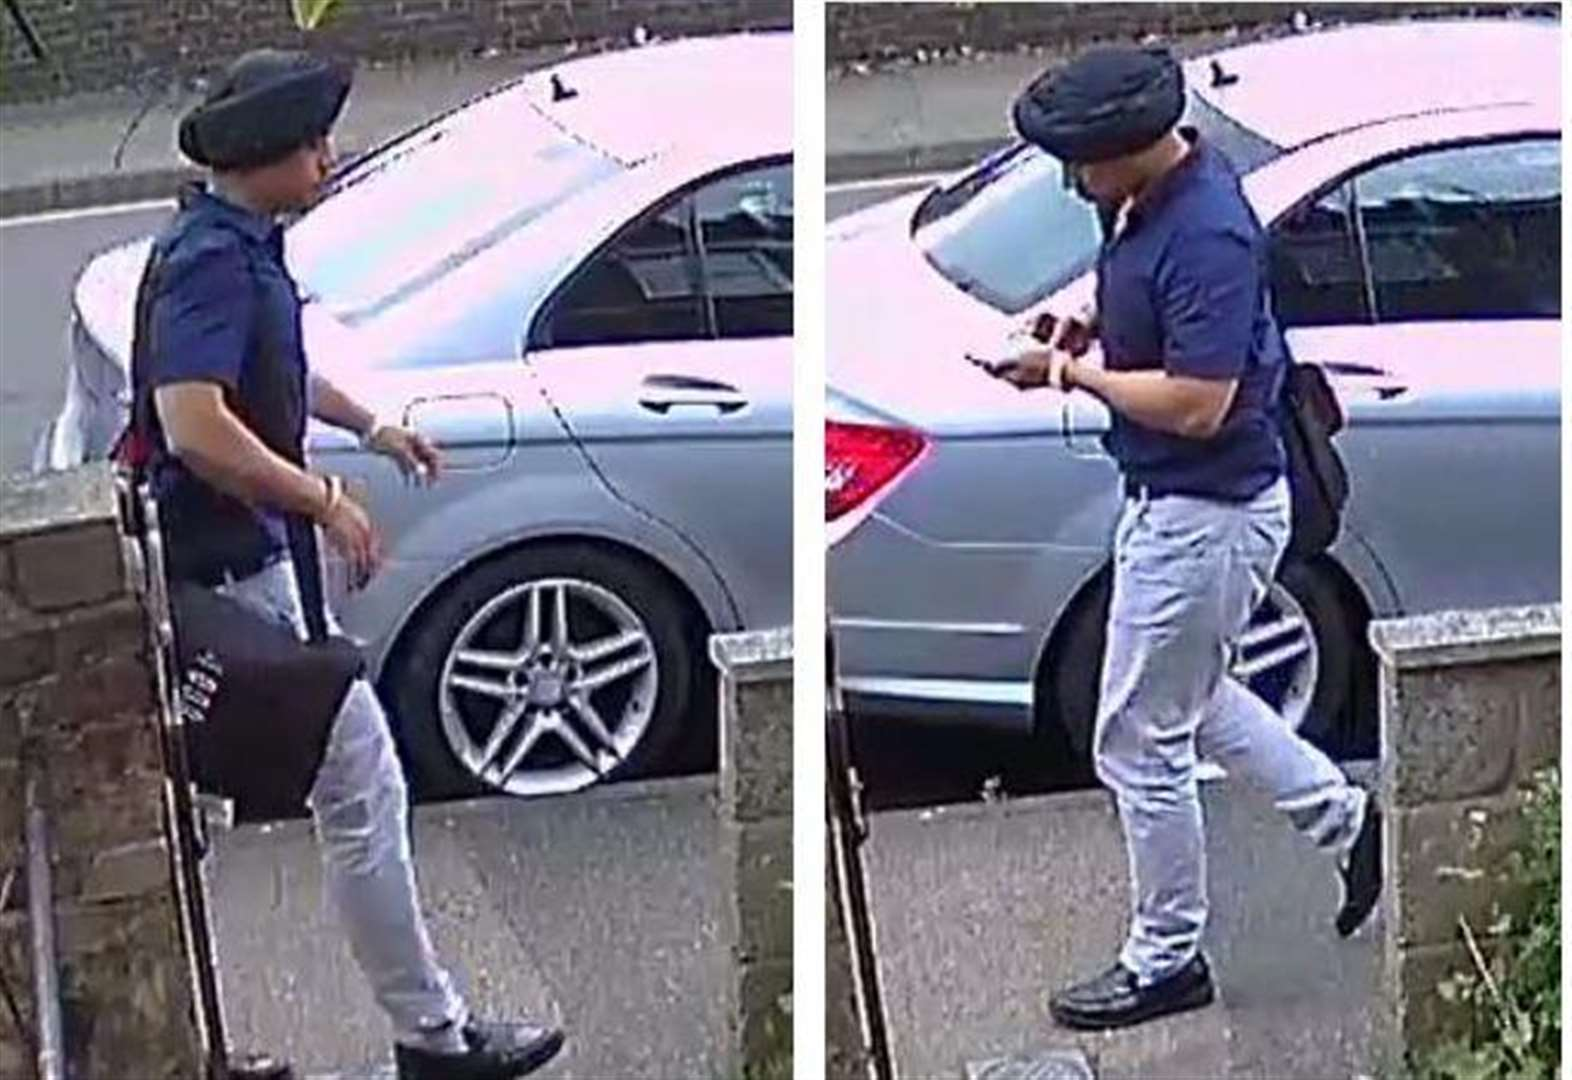 £19,000 fraud sparks search for man